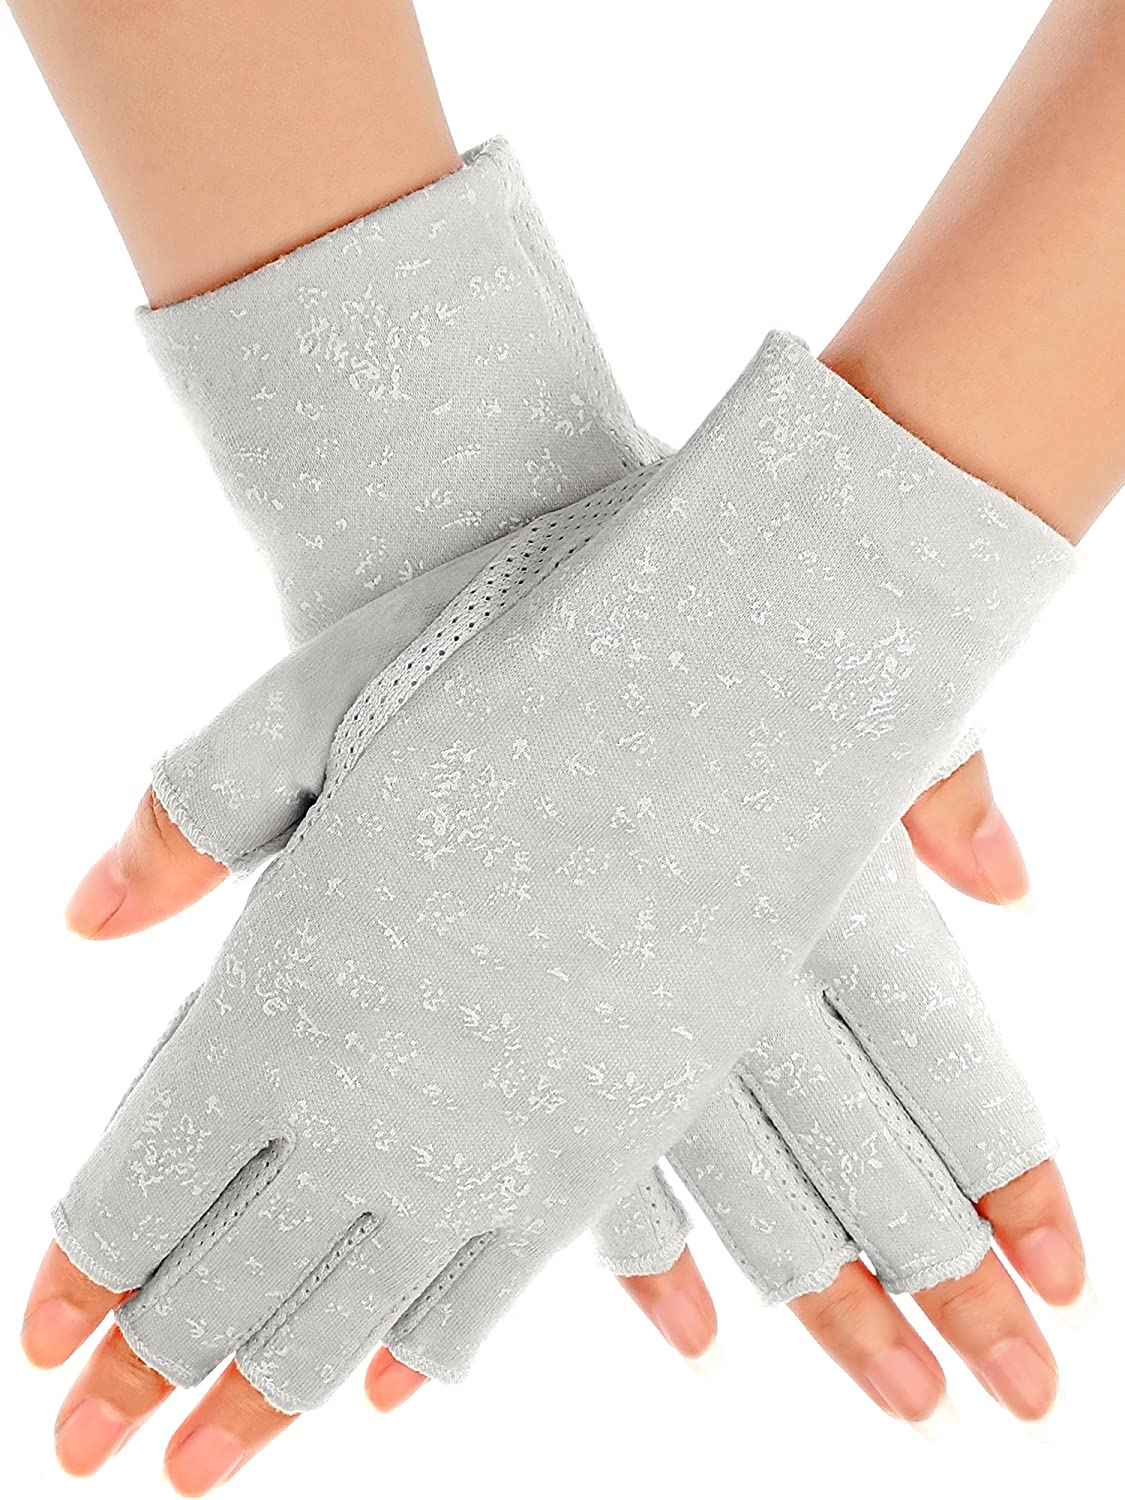 Maxdot Women Sunblock Fingerless Gloves Non Skid Summer Gloves UV Protection Driving Gloves